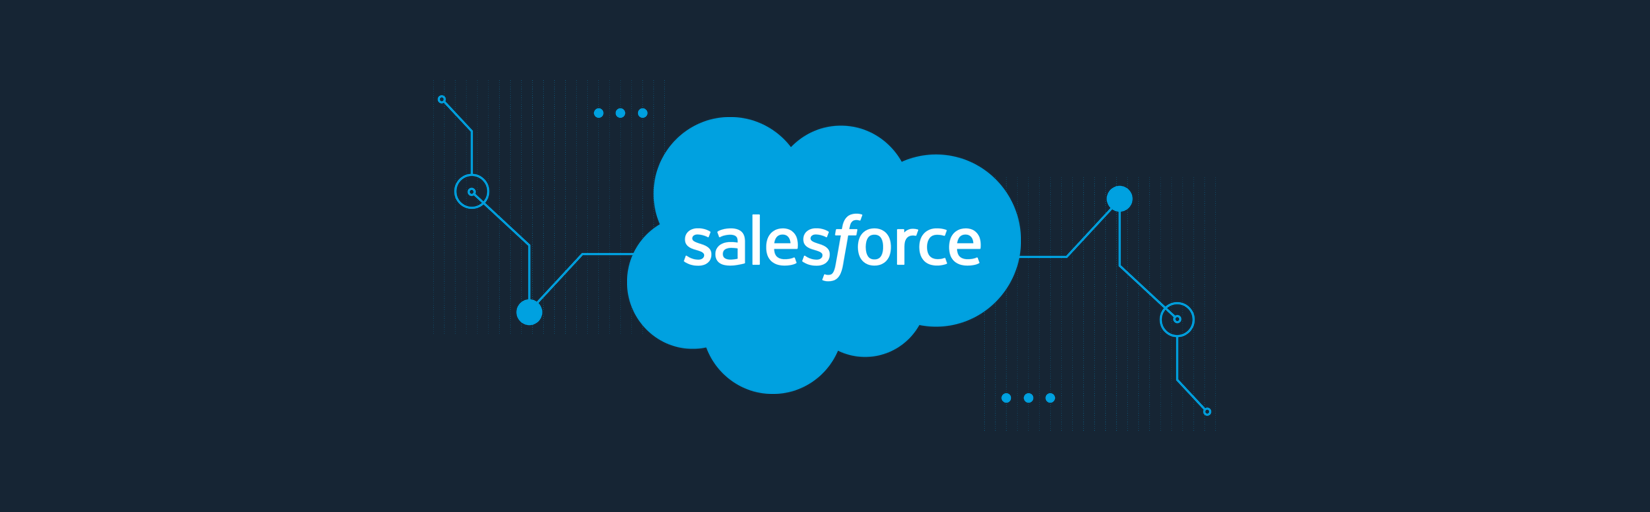 How To Improve Your Sales Pipeline Through Salesforce